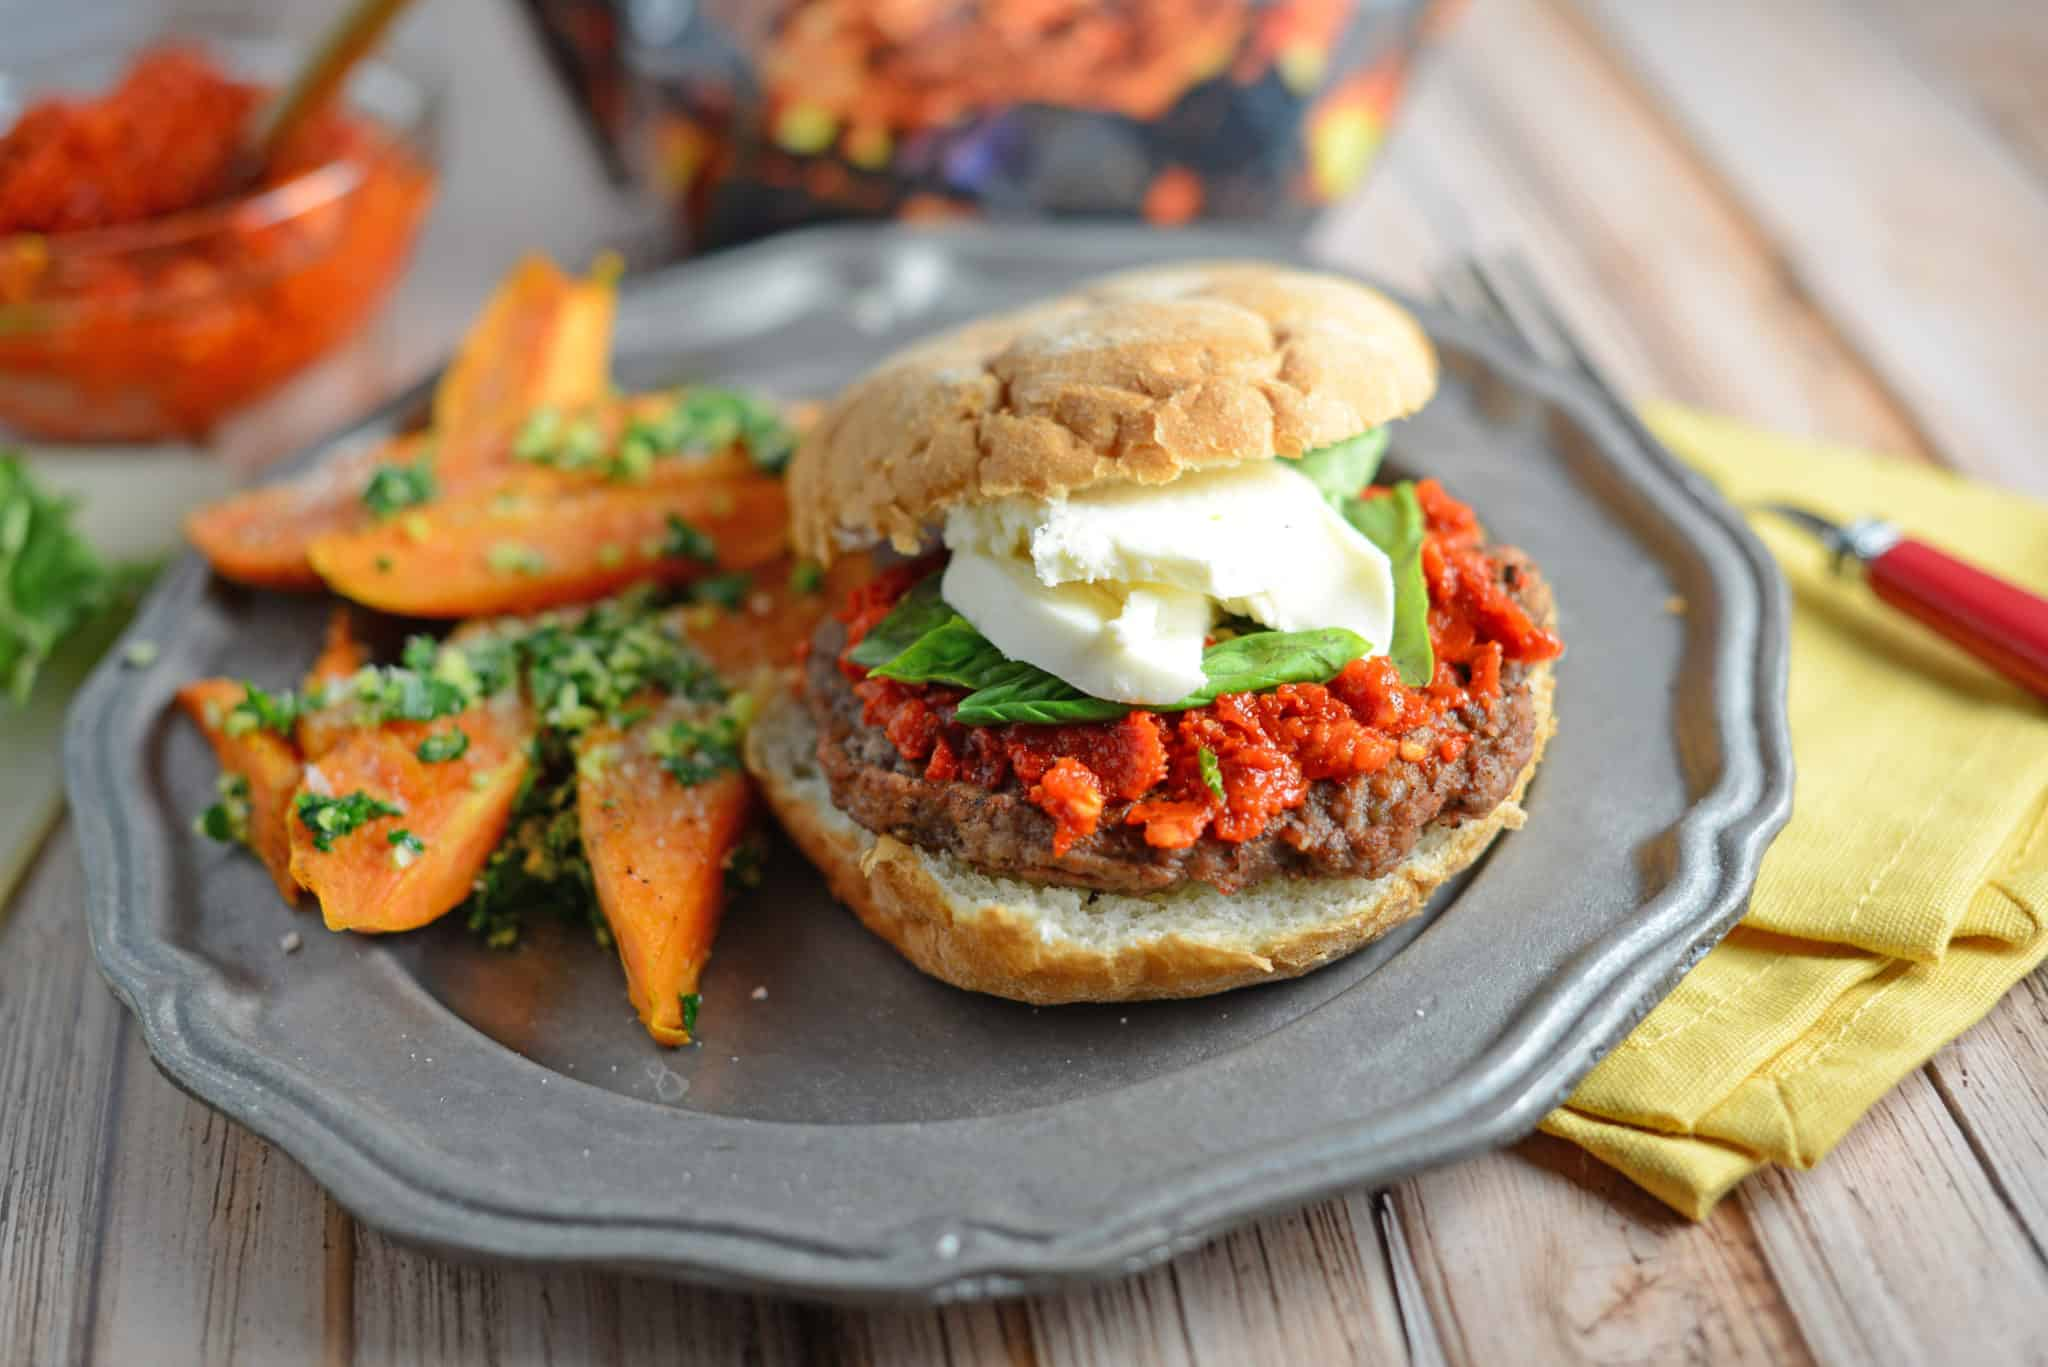 Caprese Burger Recipe - an easy sun dried tomato pesto, fresh basil and mozzarella cheese with your choice of caramelized onions and balsamic reduction. This is the best burger ever! www.savoryexperiments.com